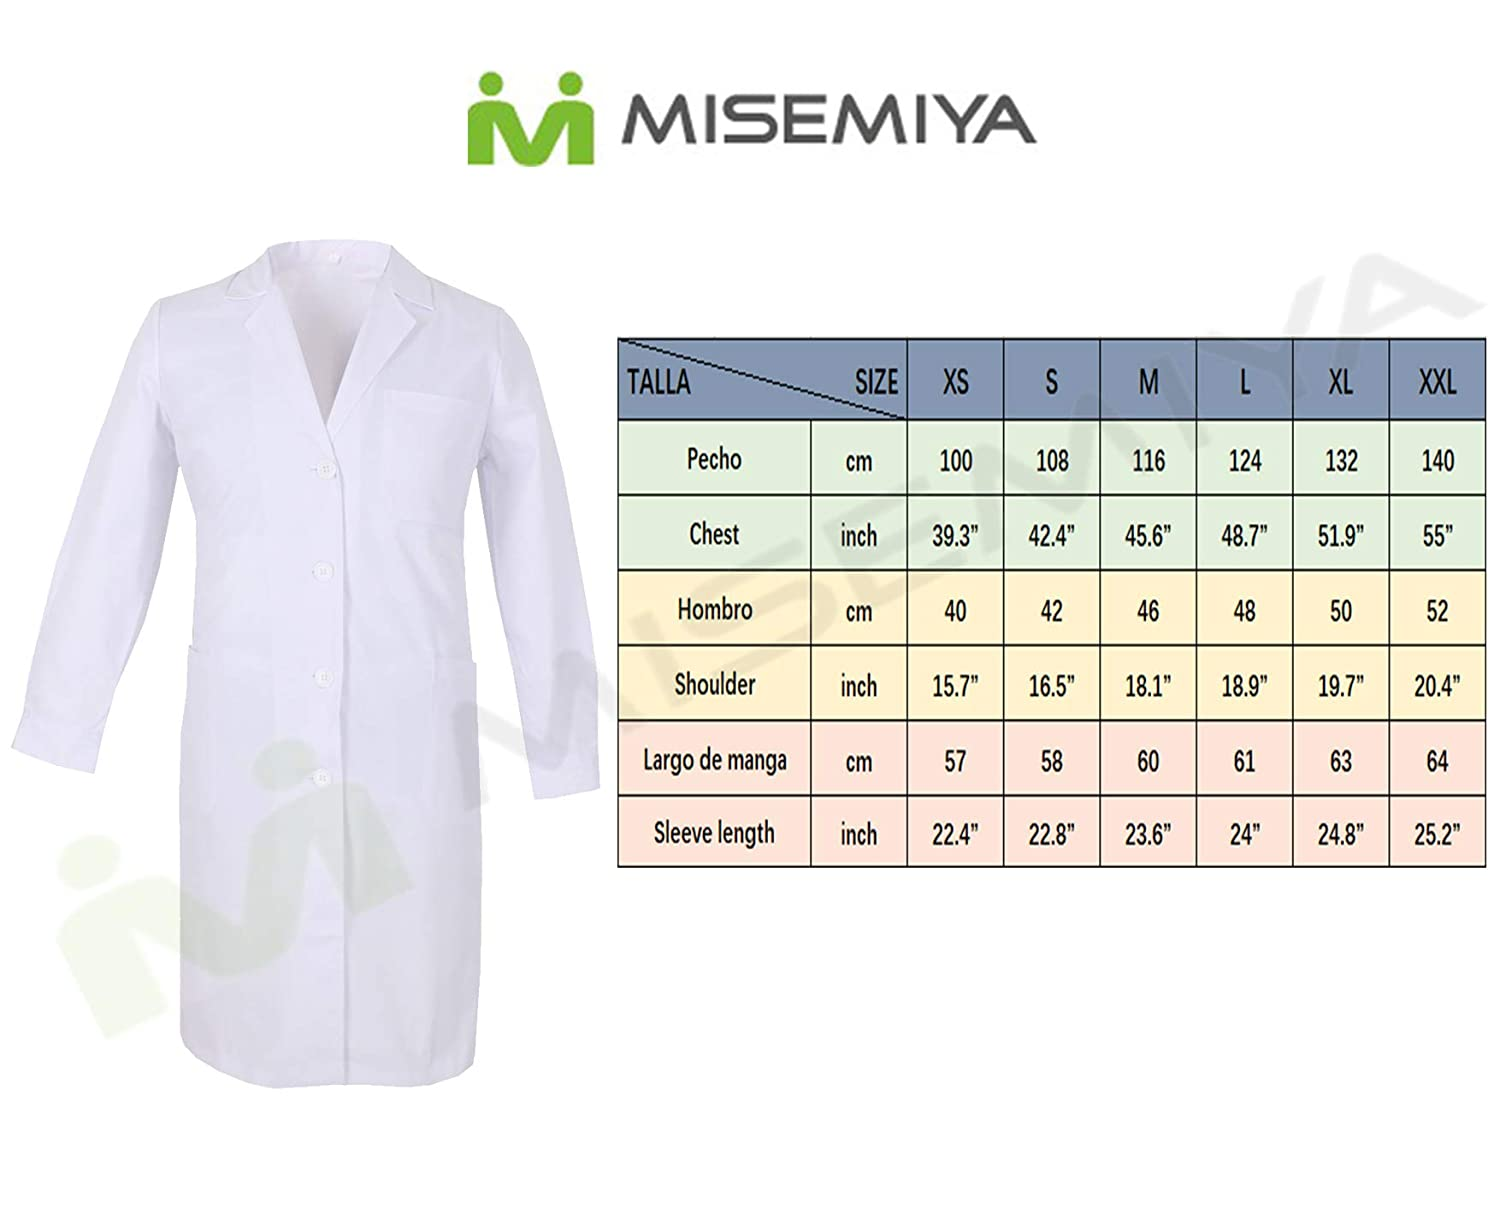 Set of 2 MISEMIYA Work Clothes Lady Short Sleeves Uniform Medical Uniforms Scrub Top Ref.707